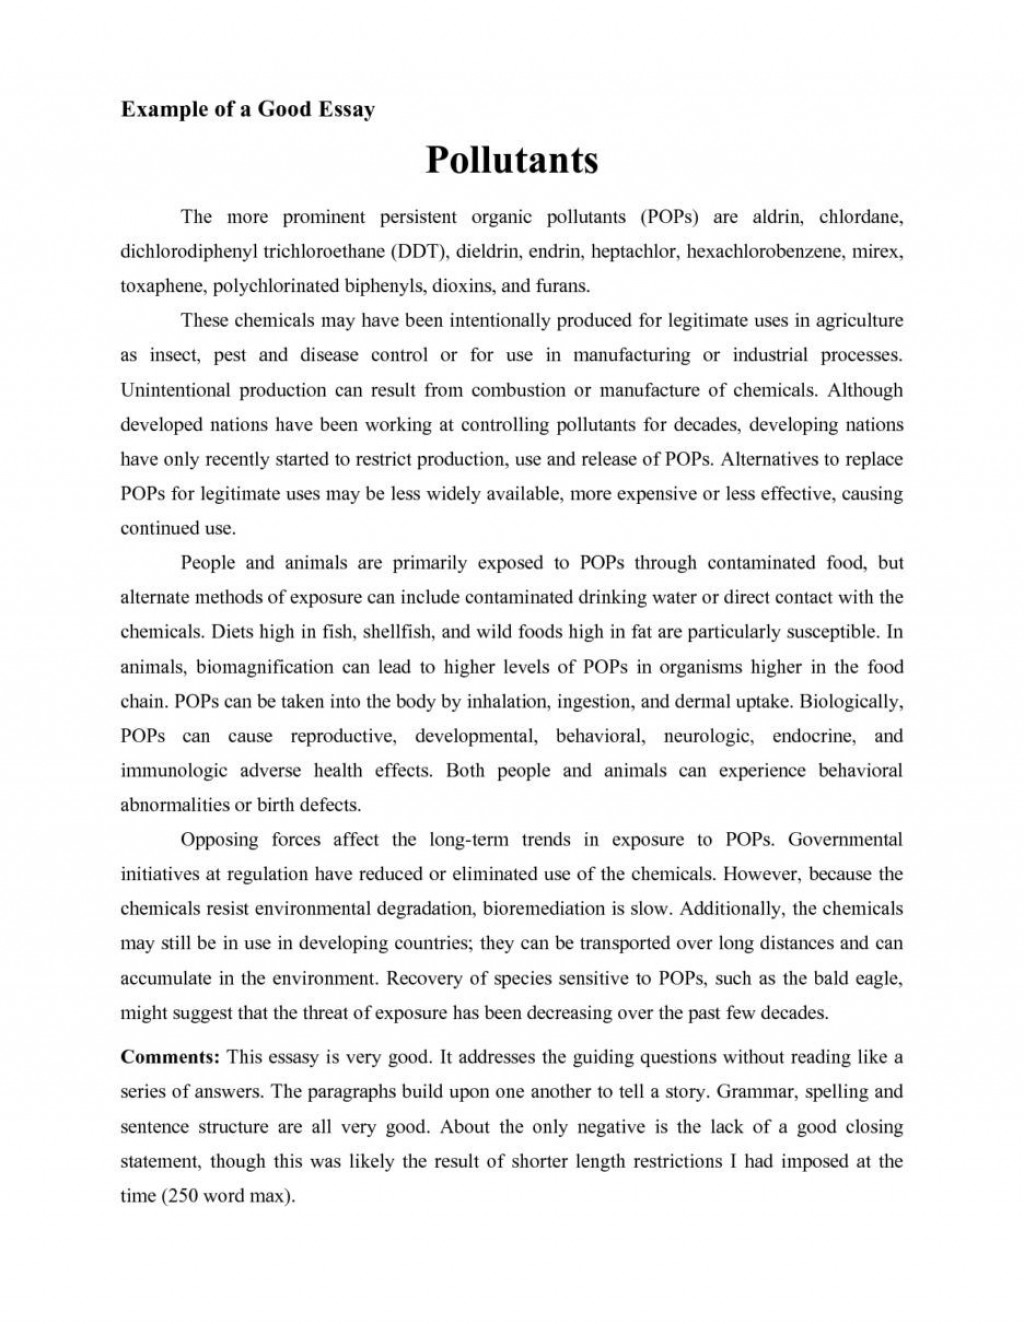 006 Essay Example Imposing Of Narrative Format Introduction Spm Conclusion Large